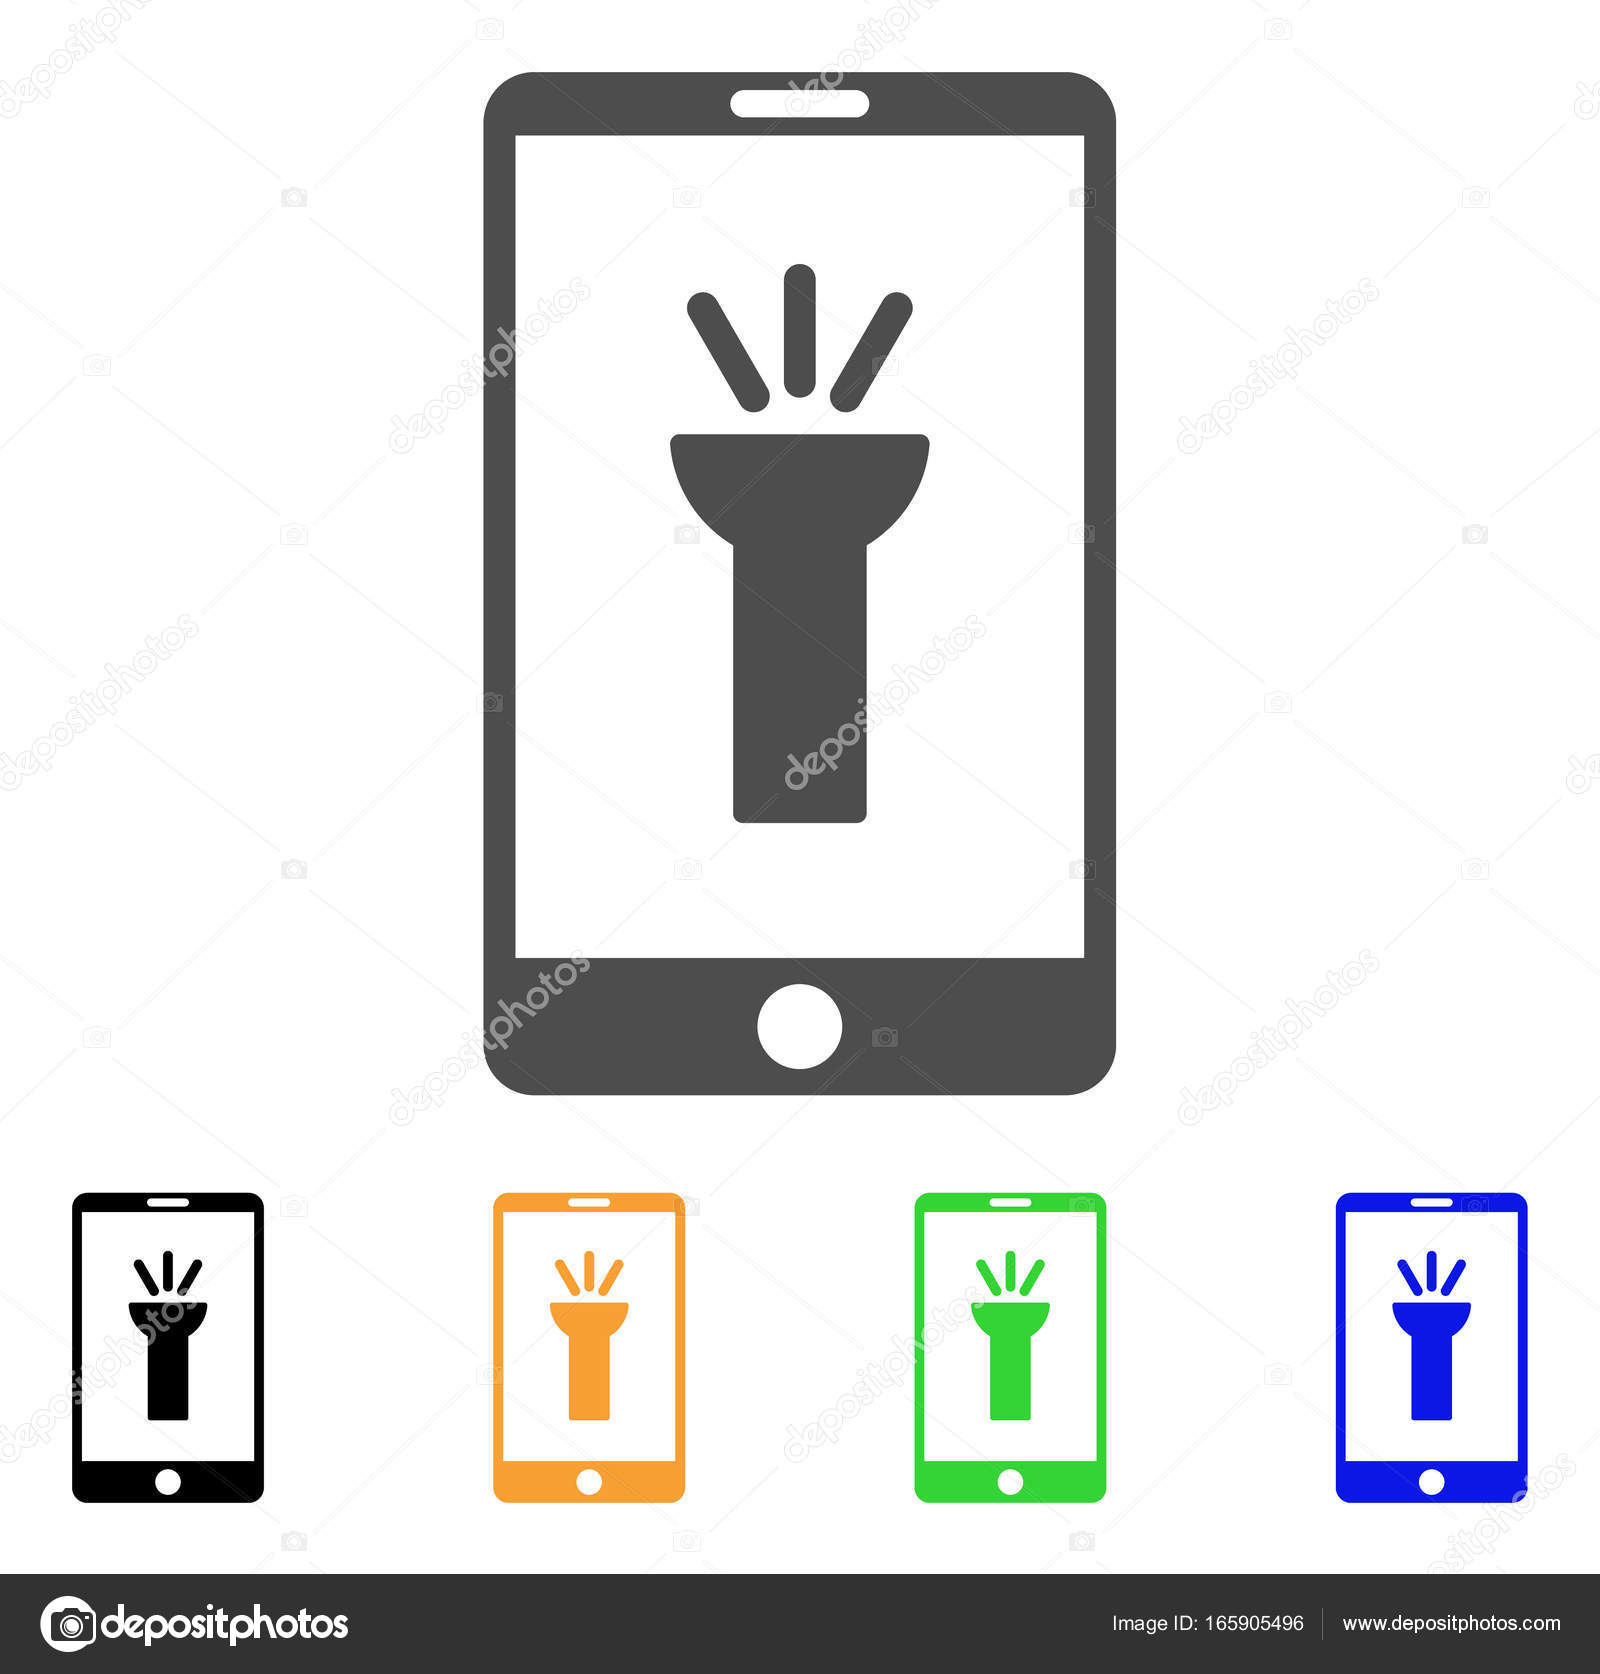 mobile torch app